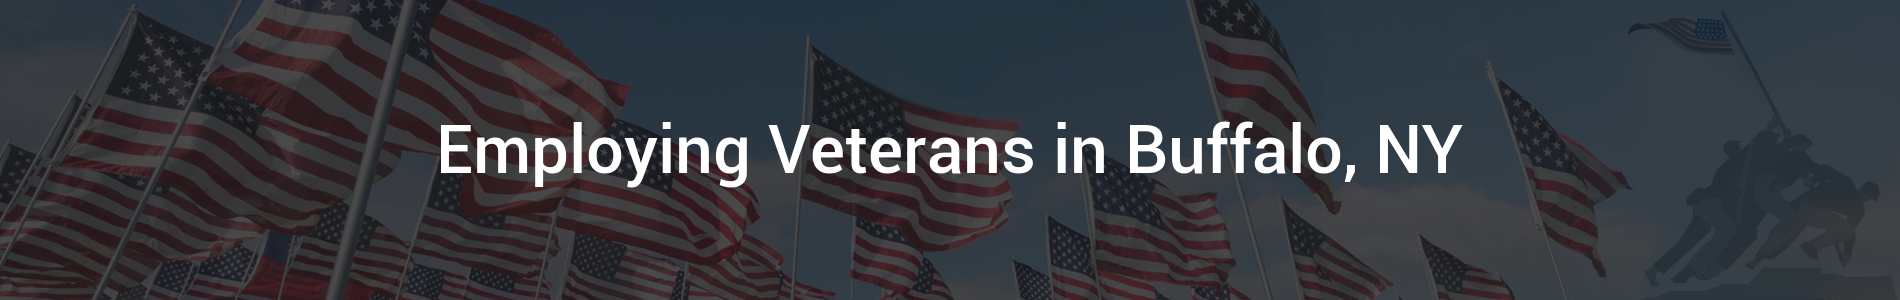 Employing Veterans - Internal Banner